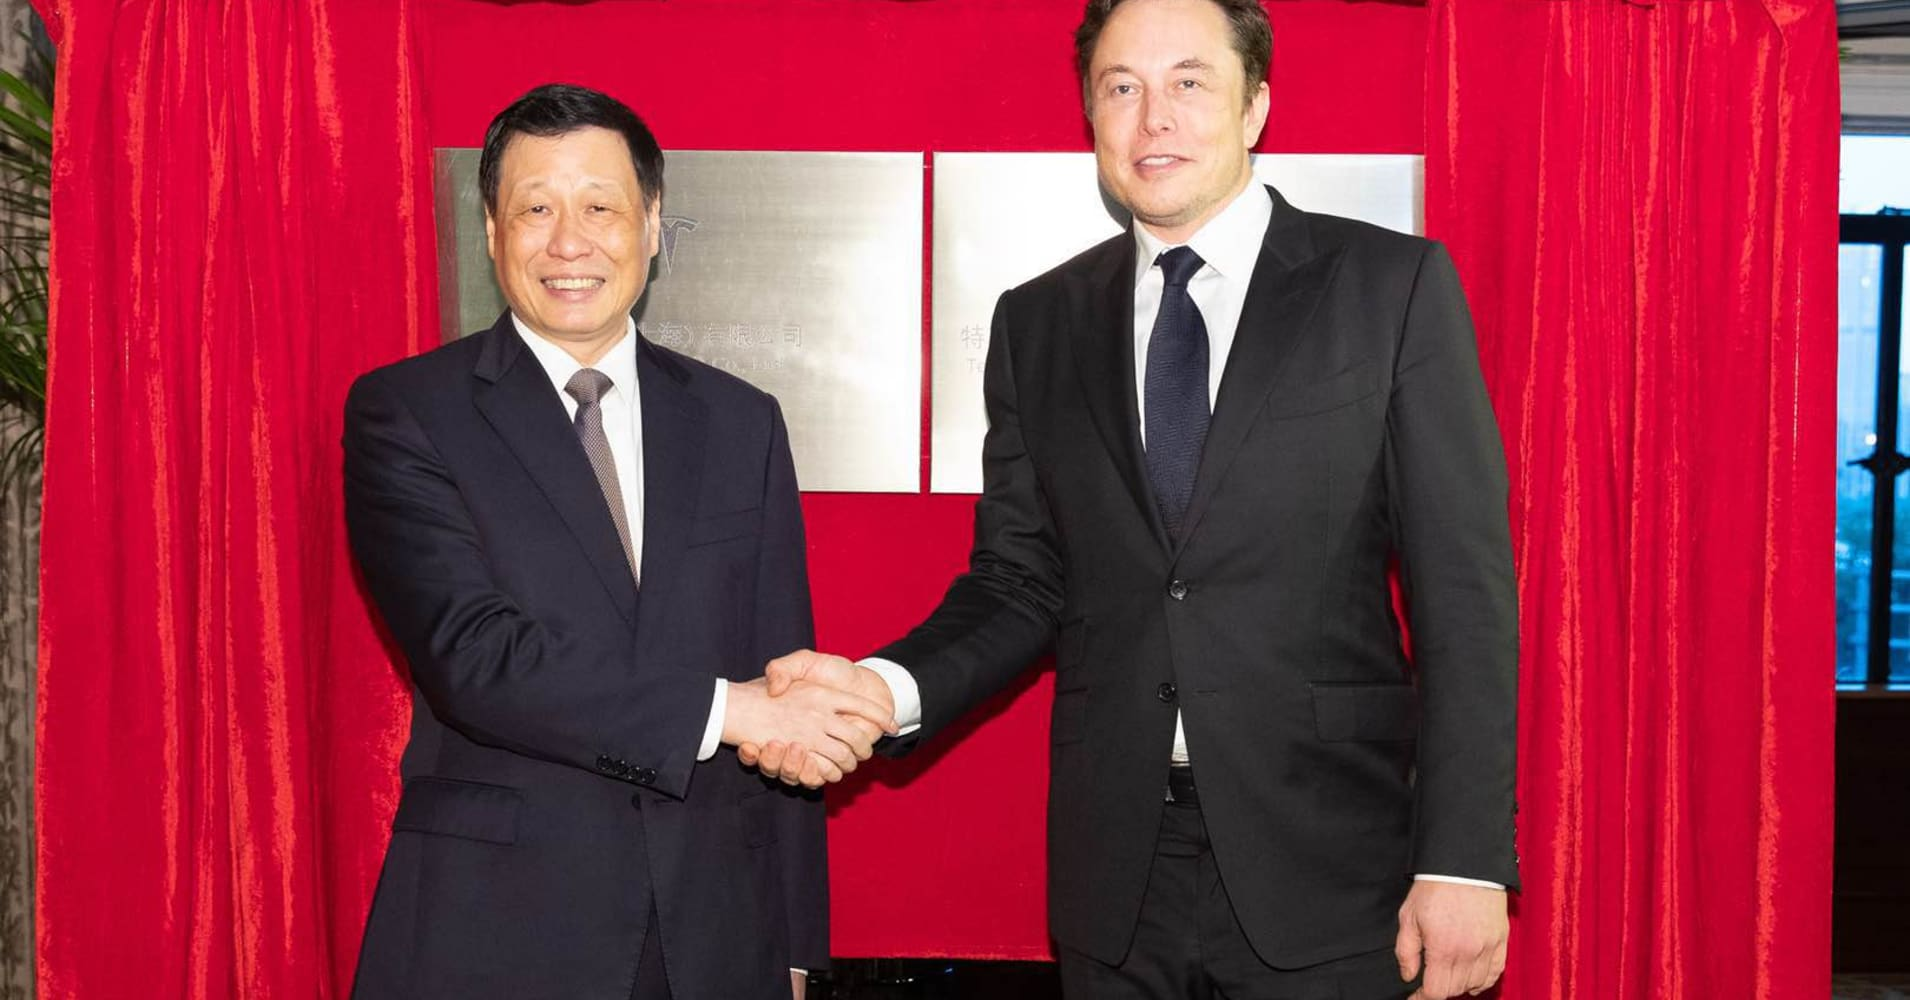 Tesla has Signed an Agreement to Build a Factory in Shanghai